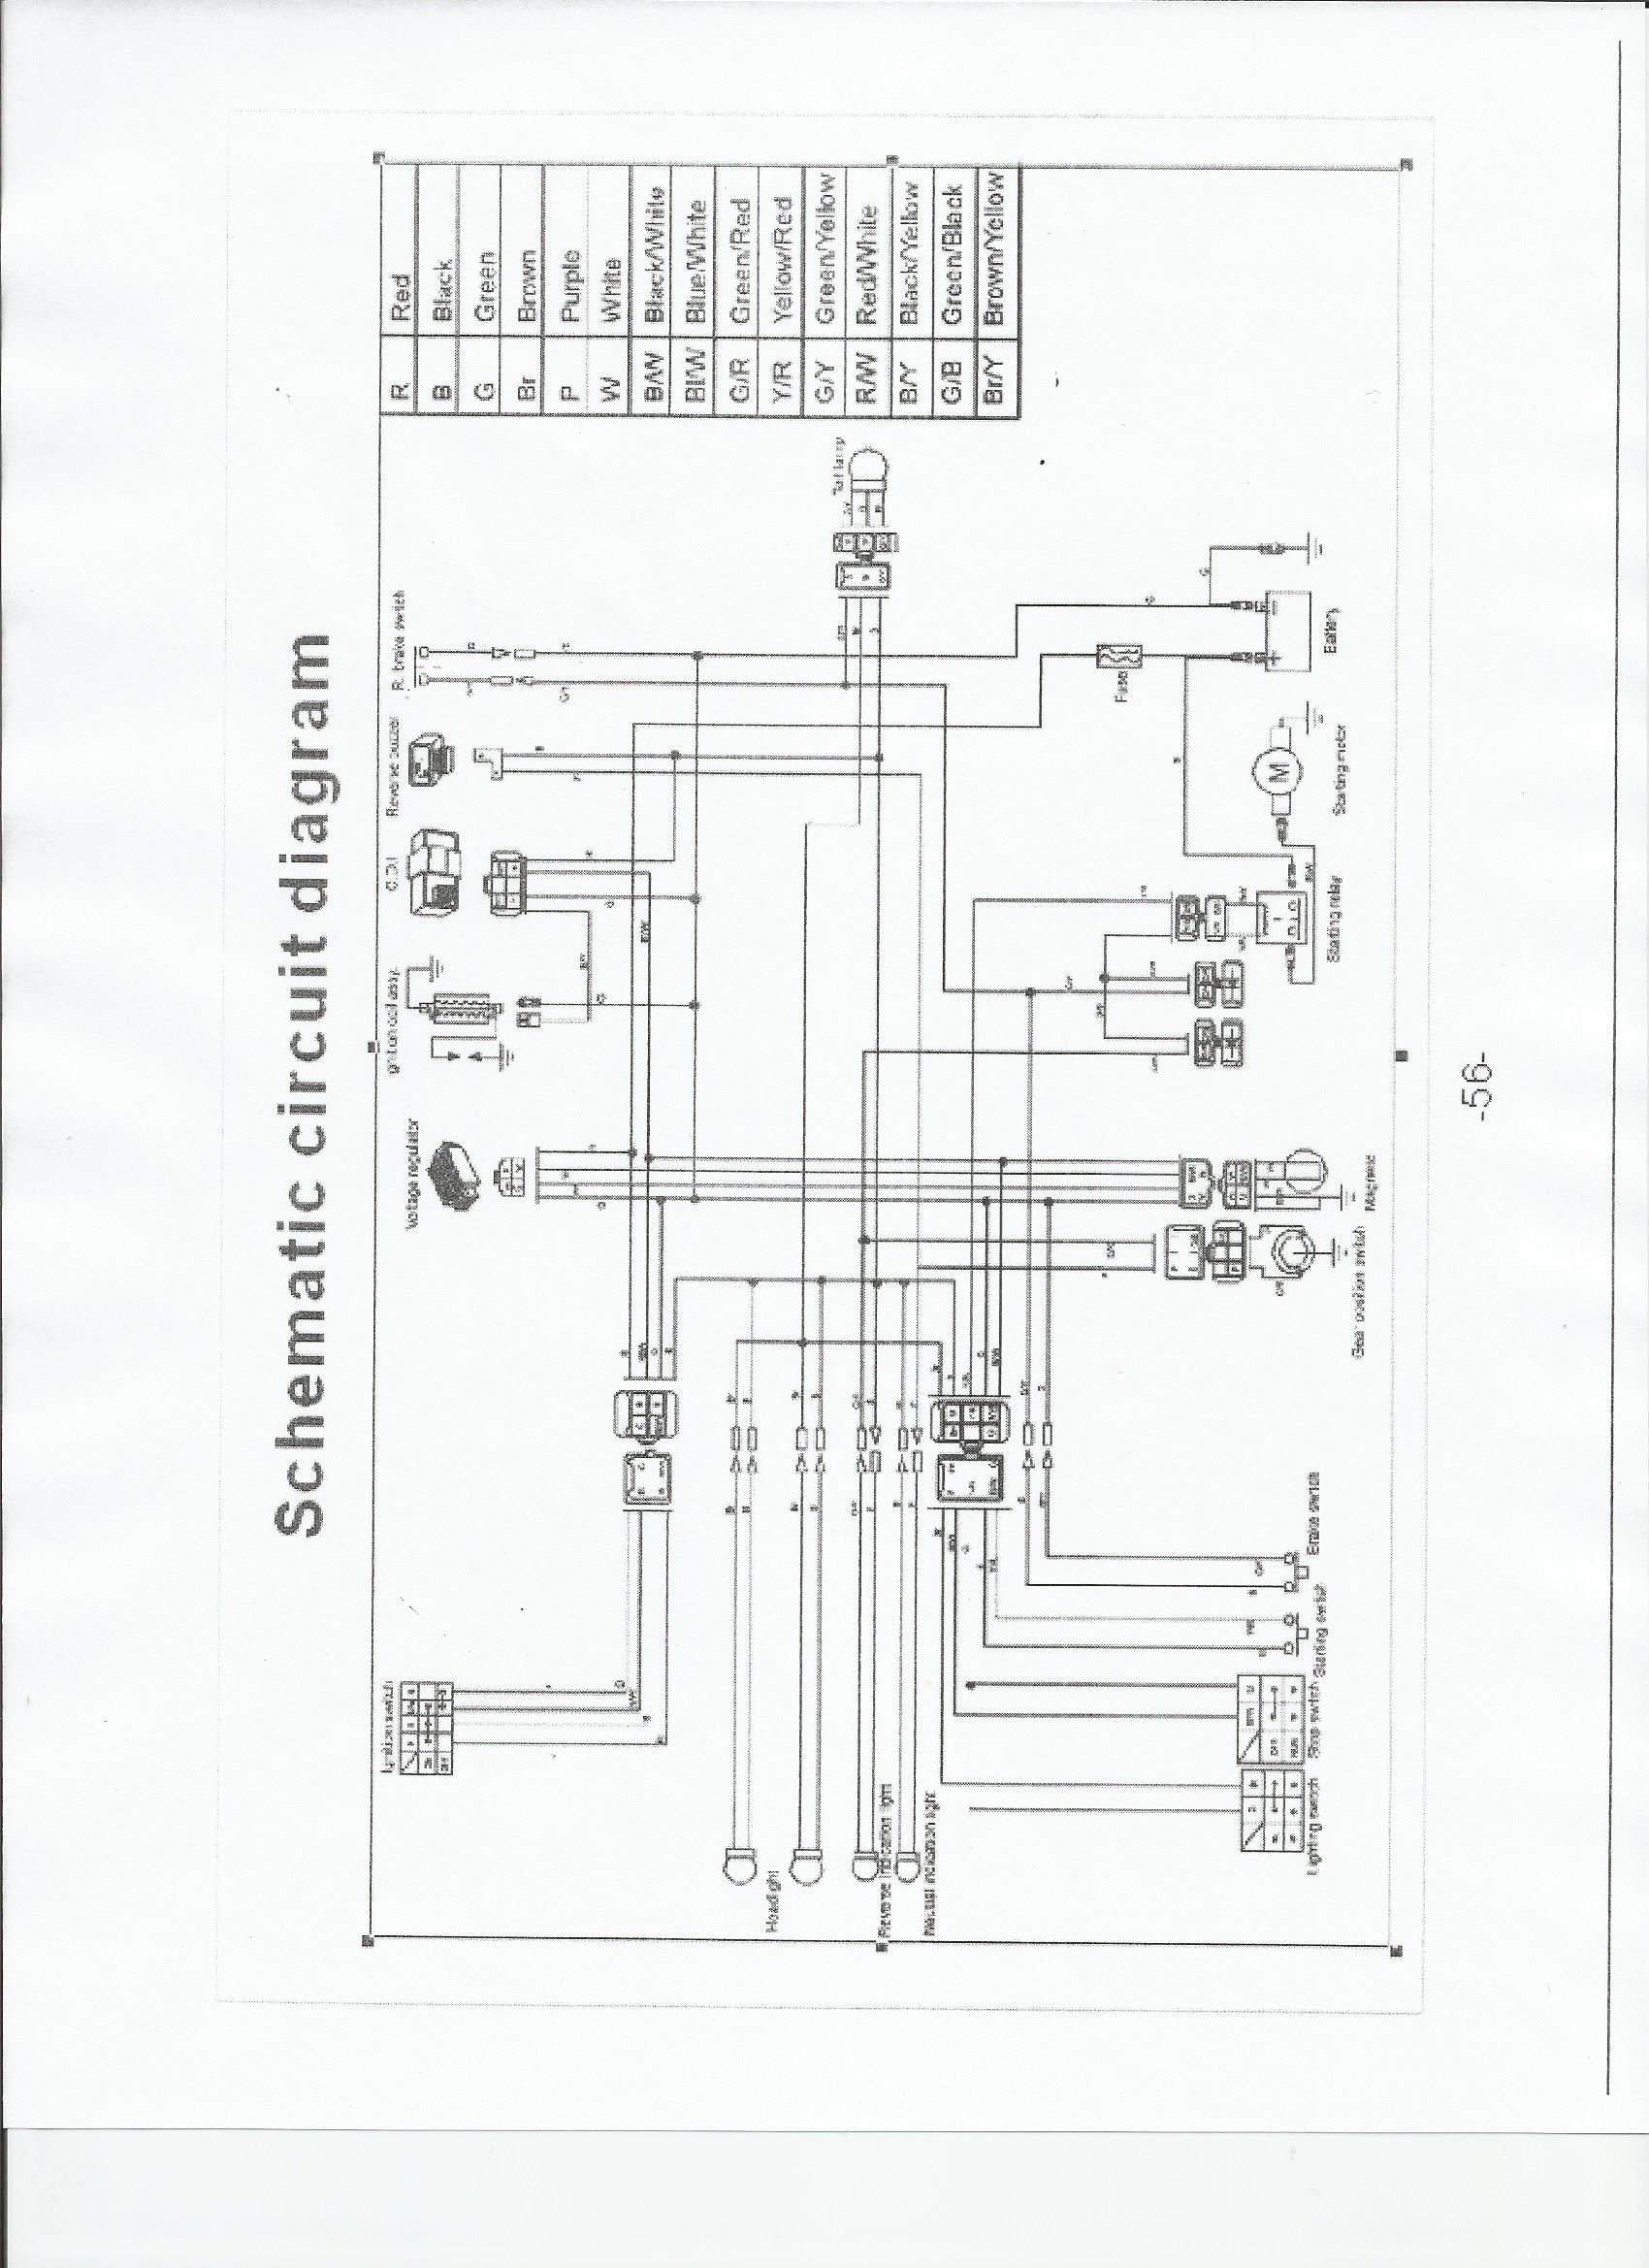 tao tao wiring schematic taotao mini and youth atv wiring schematic familygokarts support taotao 110cc wiring diagram at virtualis.co